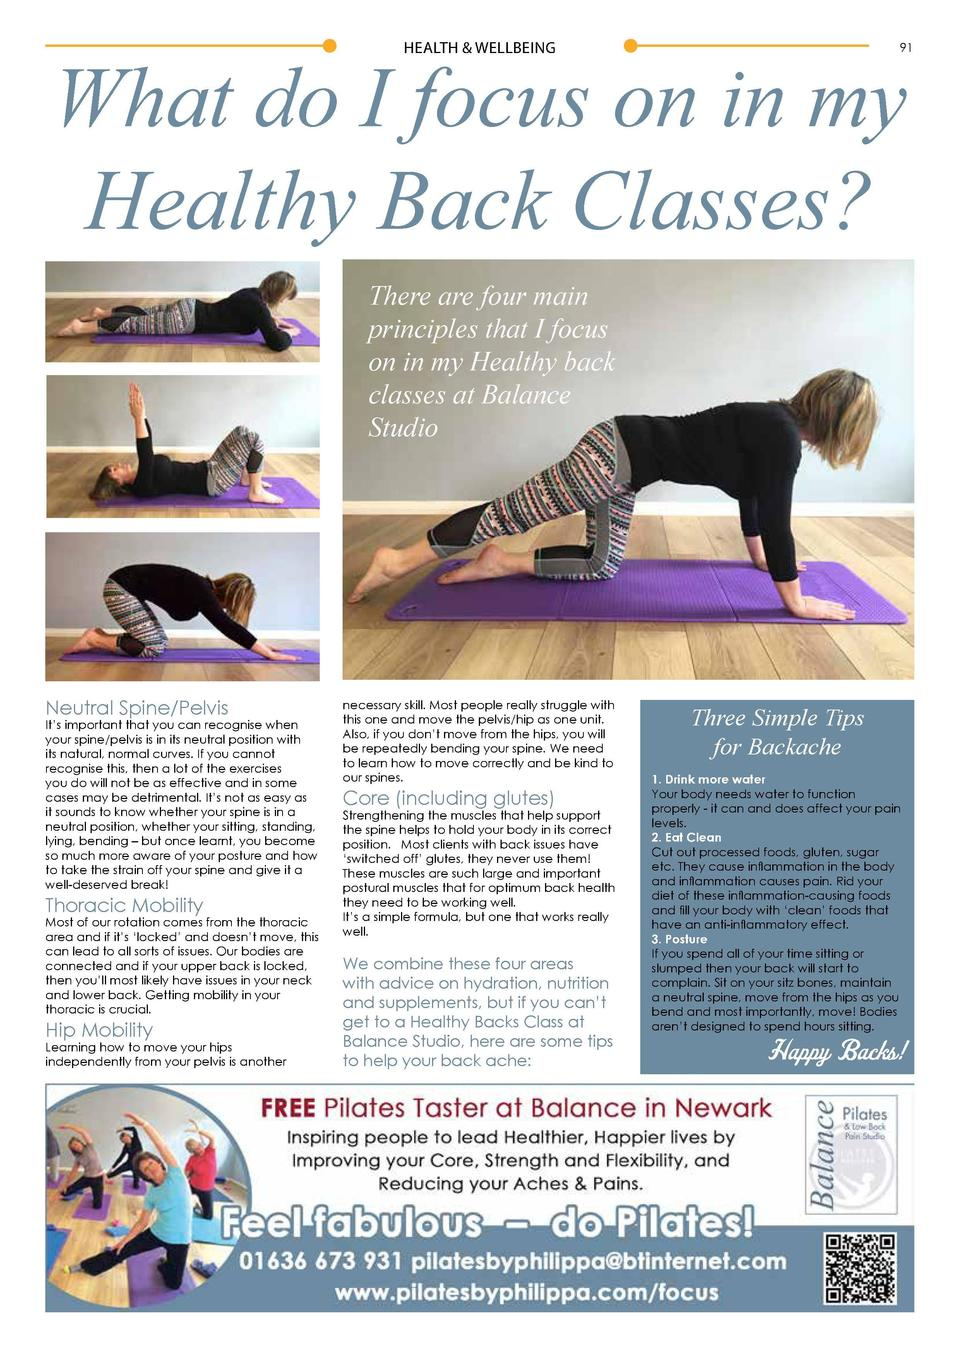 HEALTH   WELLBEING  What do I focus on in my Healthy Back Classes   91  There are four main principles that I focus on in ...